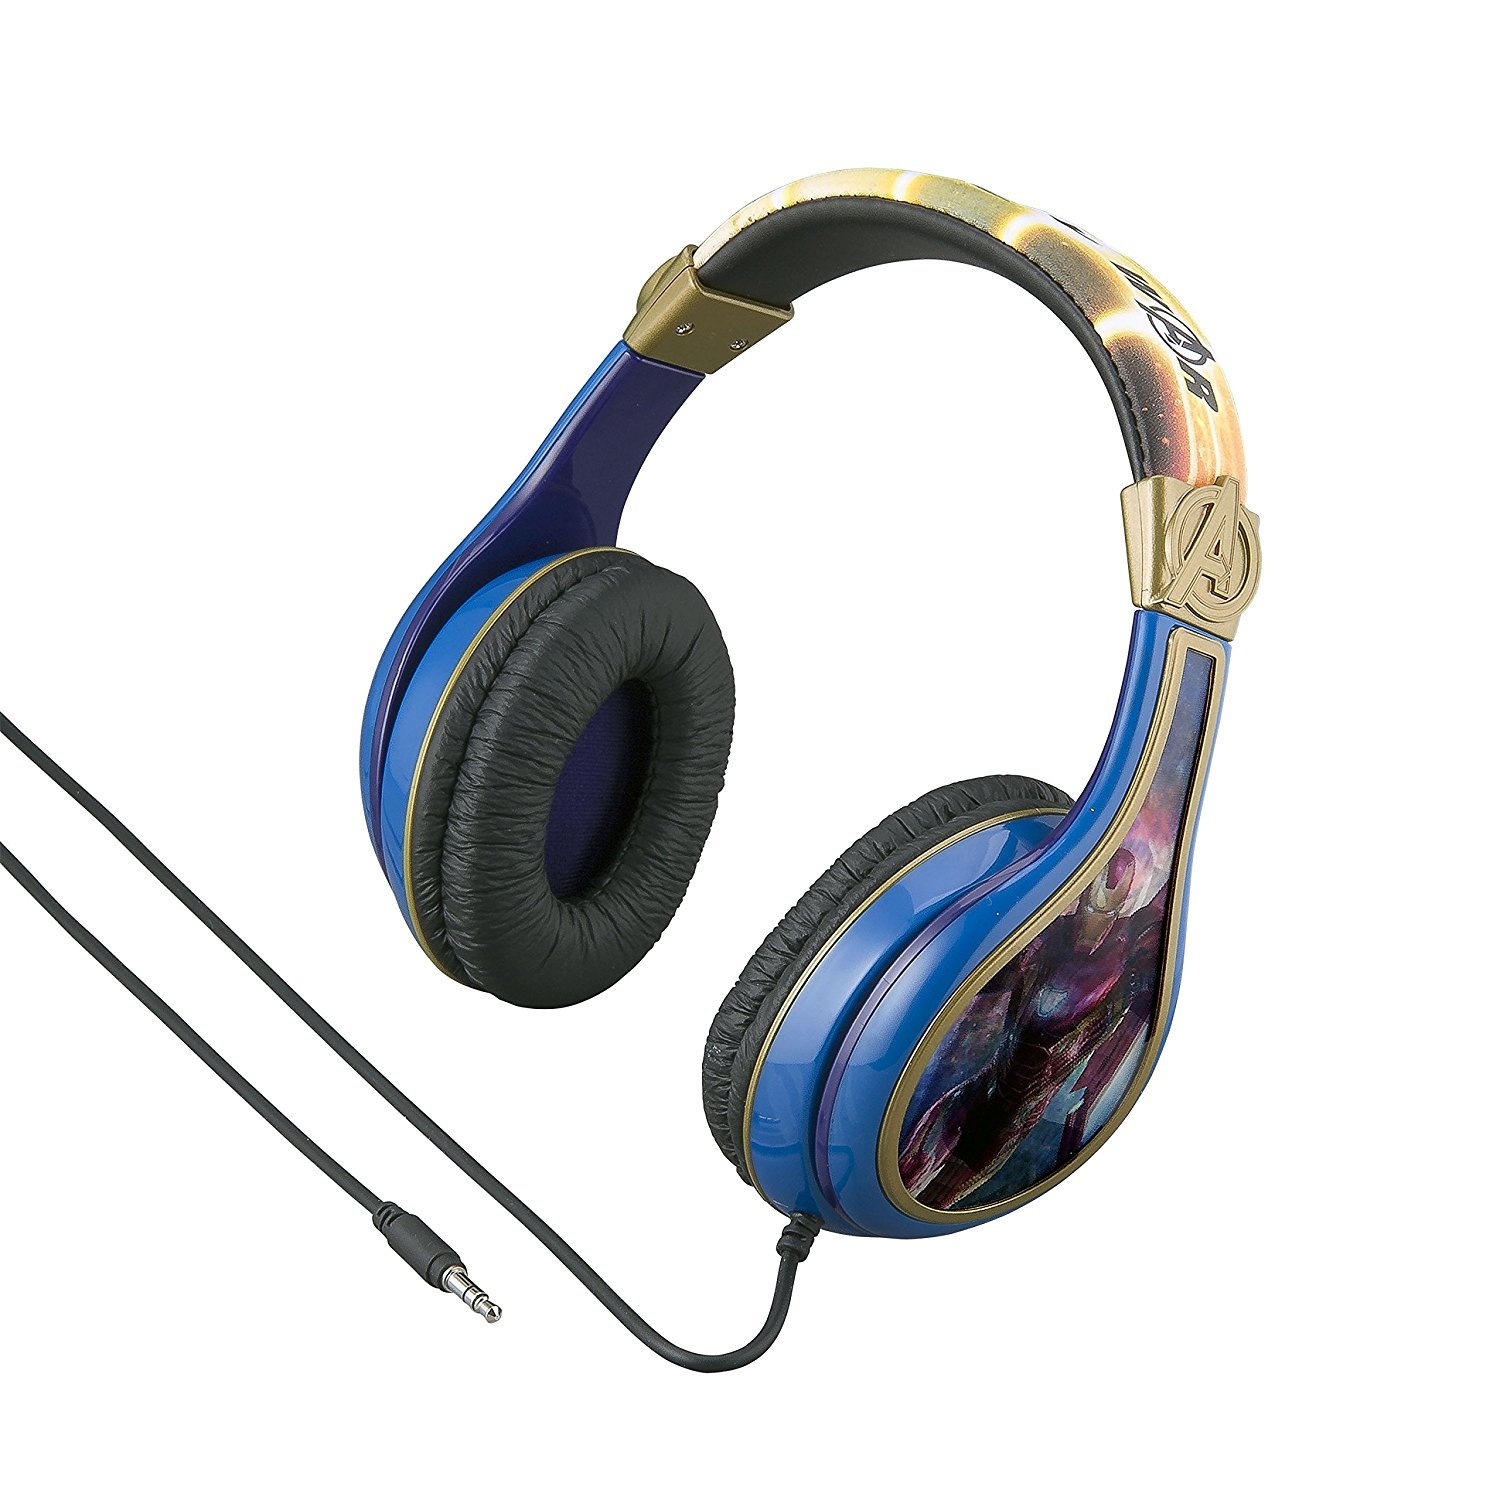 Avengers Infinity War Headphones for Kids with Built in Volume Limiting Feature for Kid Friendly Safe Listening